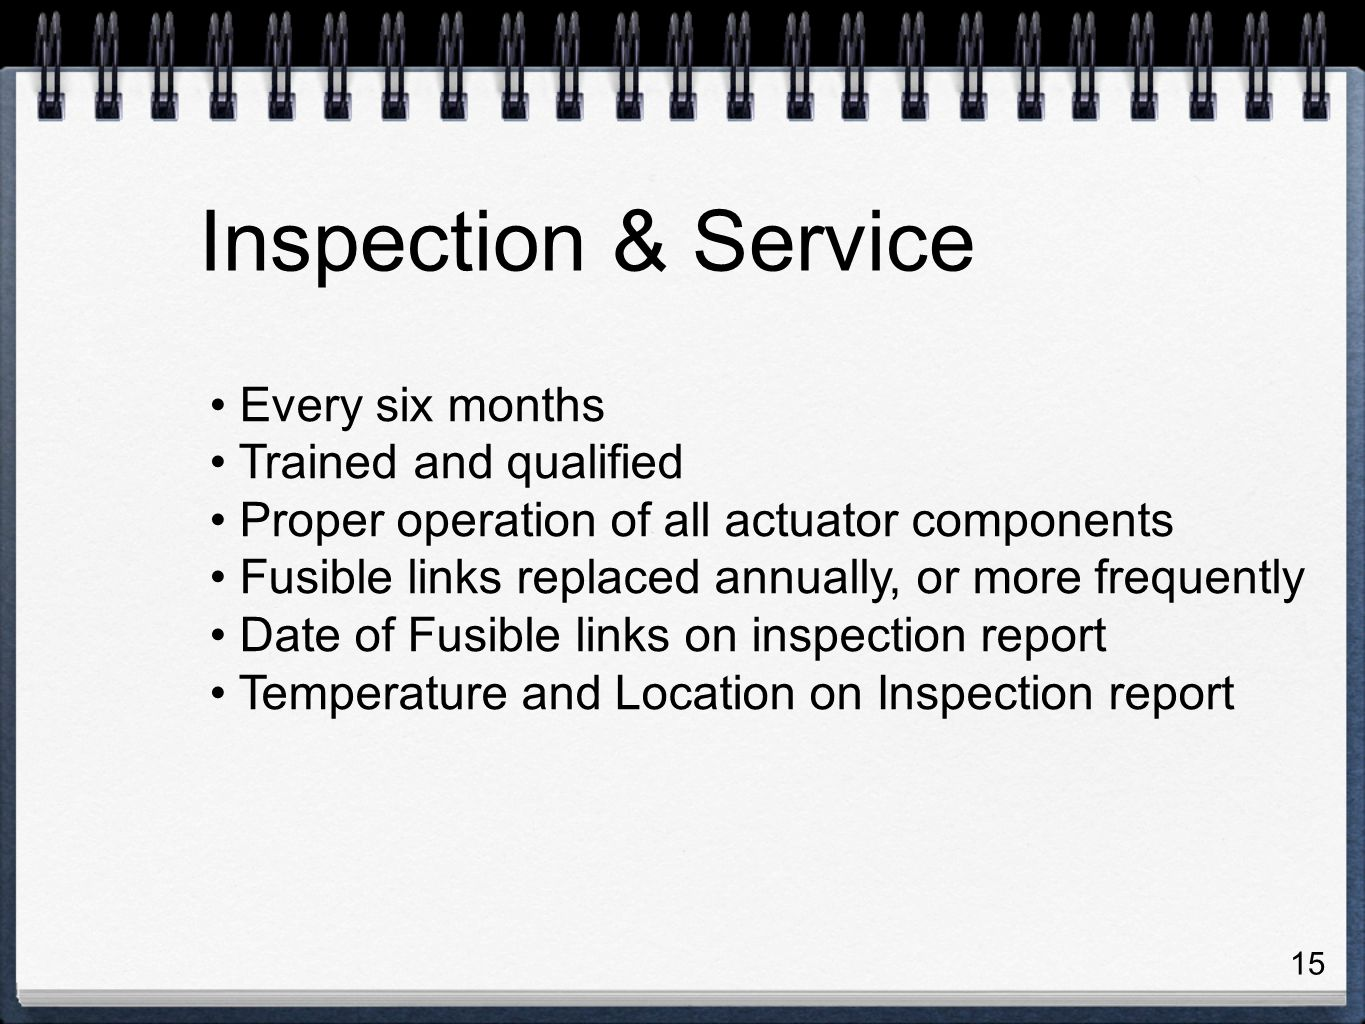 15 Every six months Trained and qualified Proper operation of all actuator components Fusible links replaced annually, or more frequently Date of Fusible links on inspection report Temperature and Location on Inspection report Inspection & Service